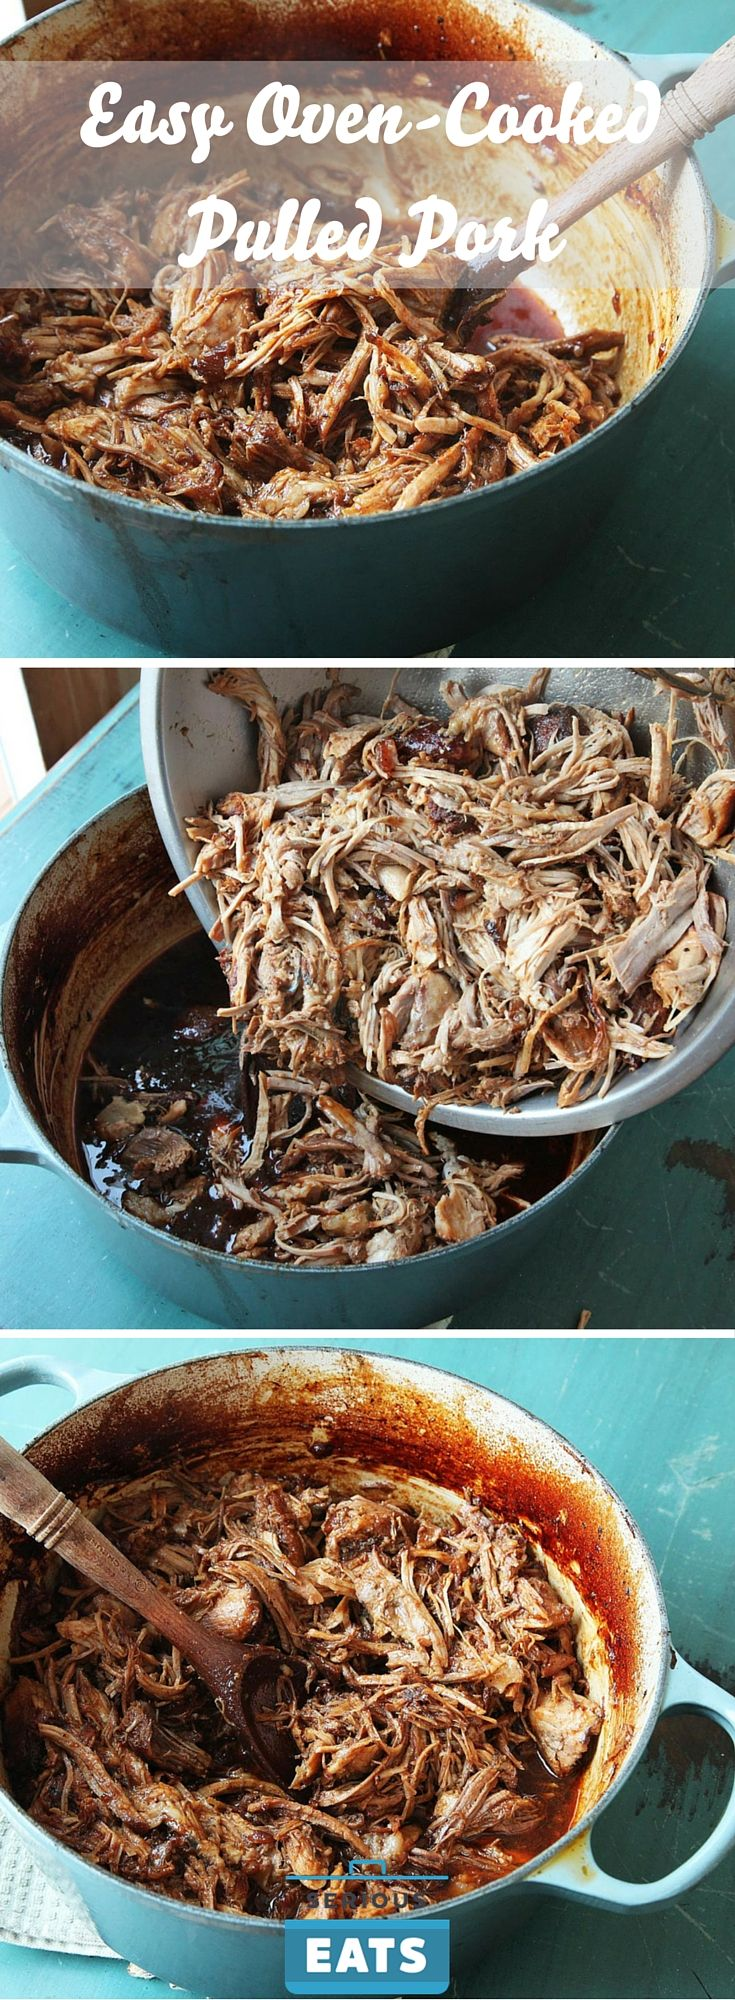 Moist and flavor-packed pulled pork from the oven.